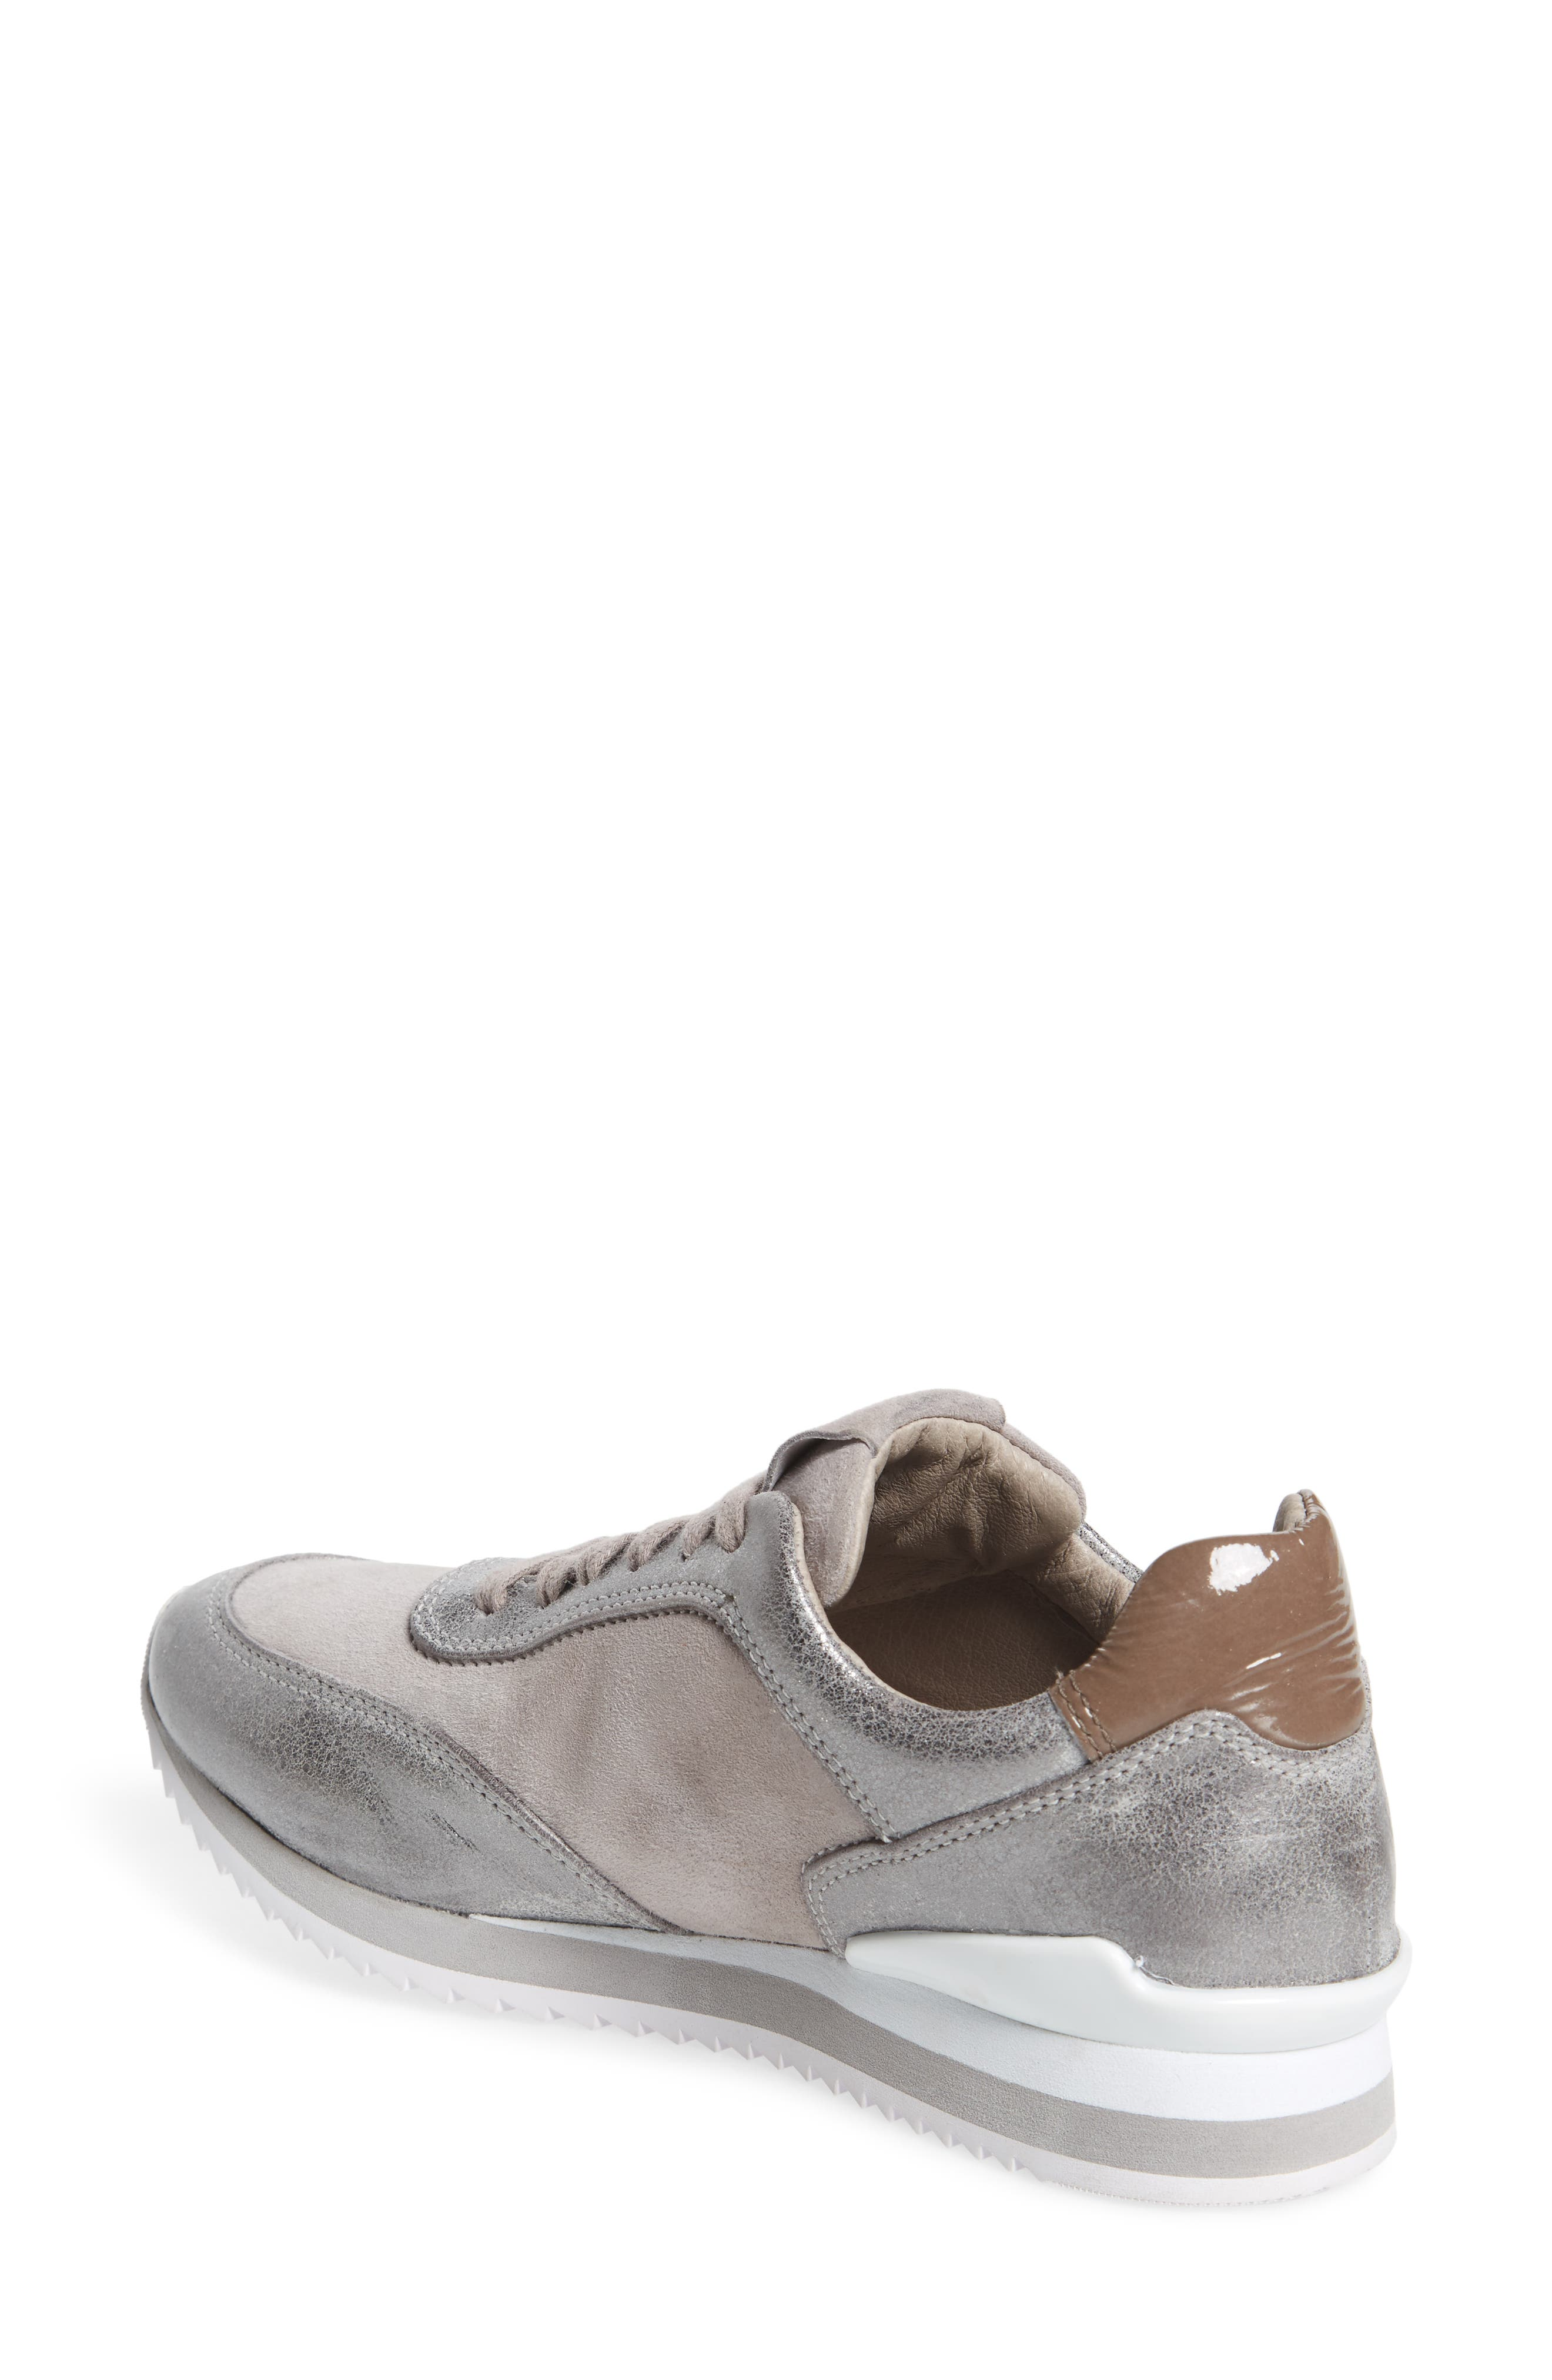 Jules Sneaker,                             Alternate thumbnail 2, color,                             Pewter Leather/ Suede